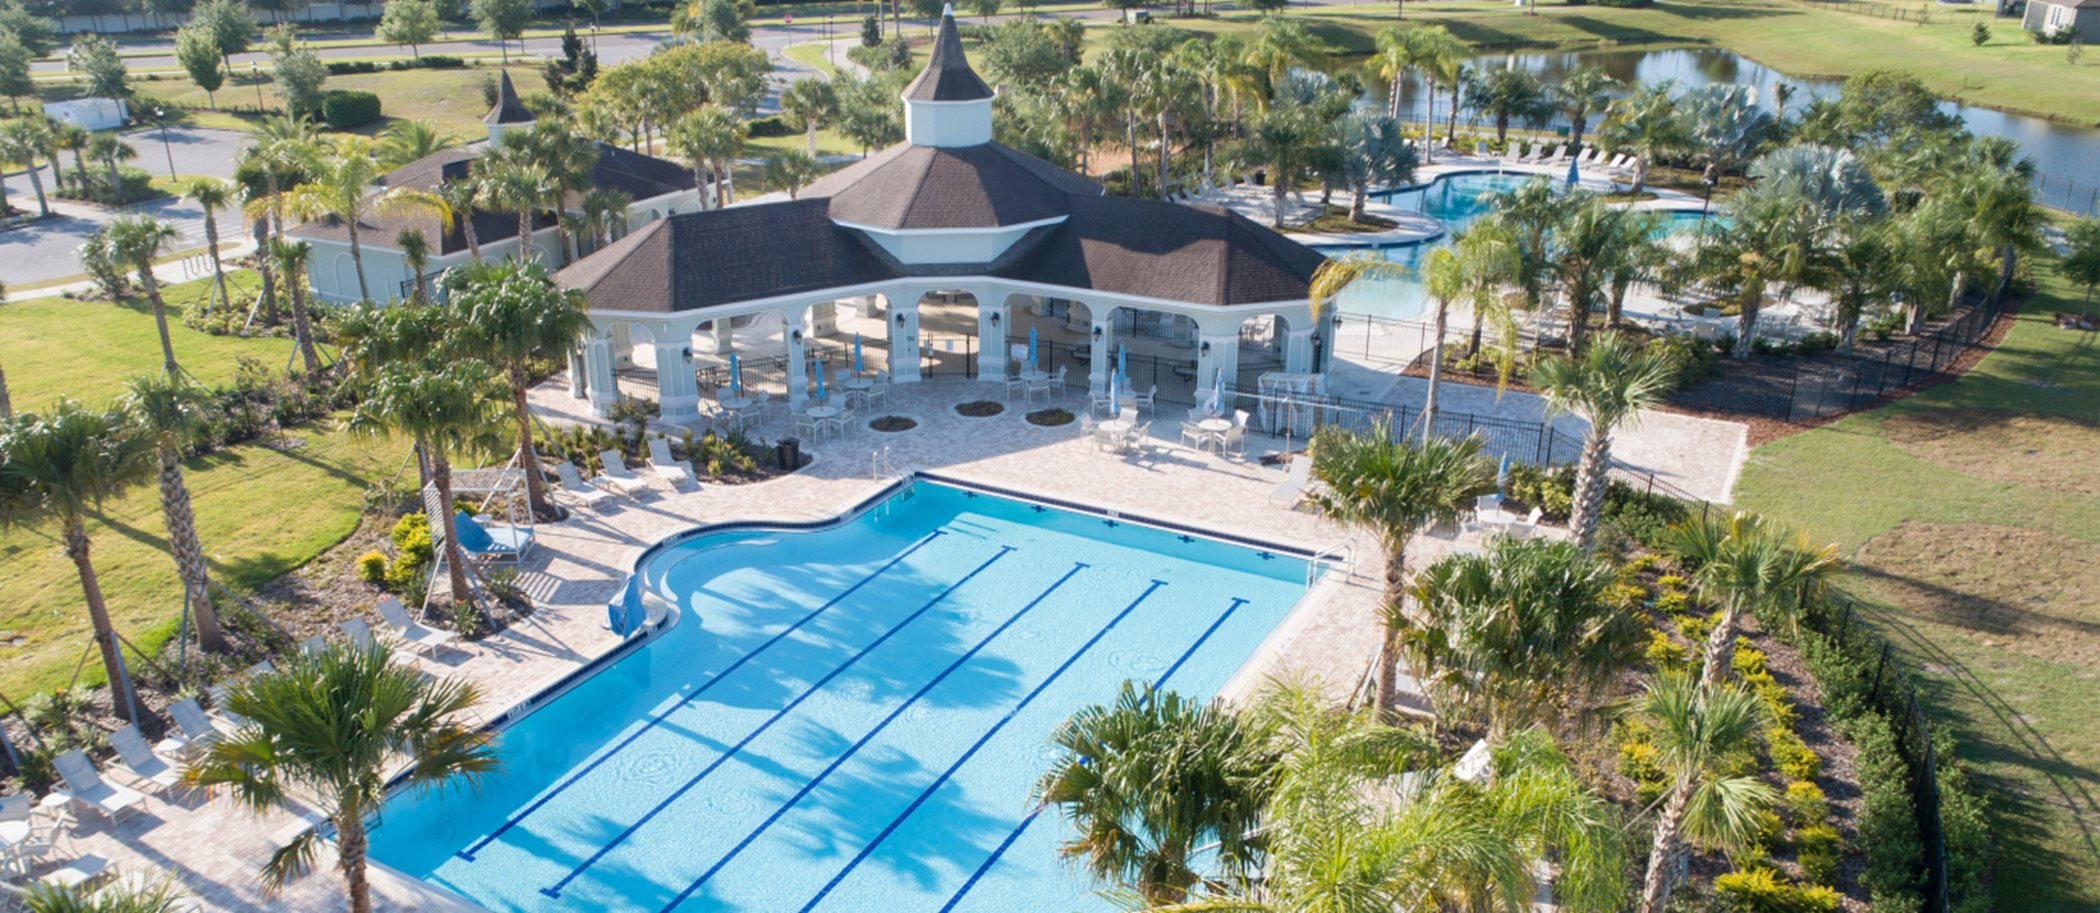 Belmont aerial view of swimming pool